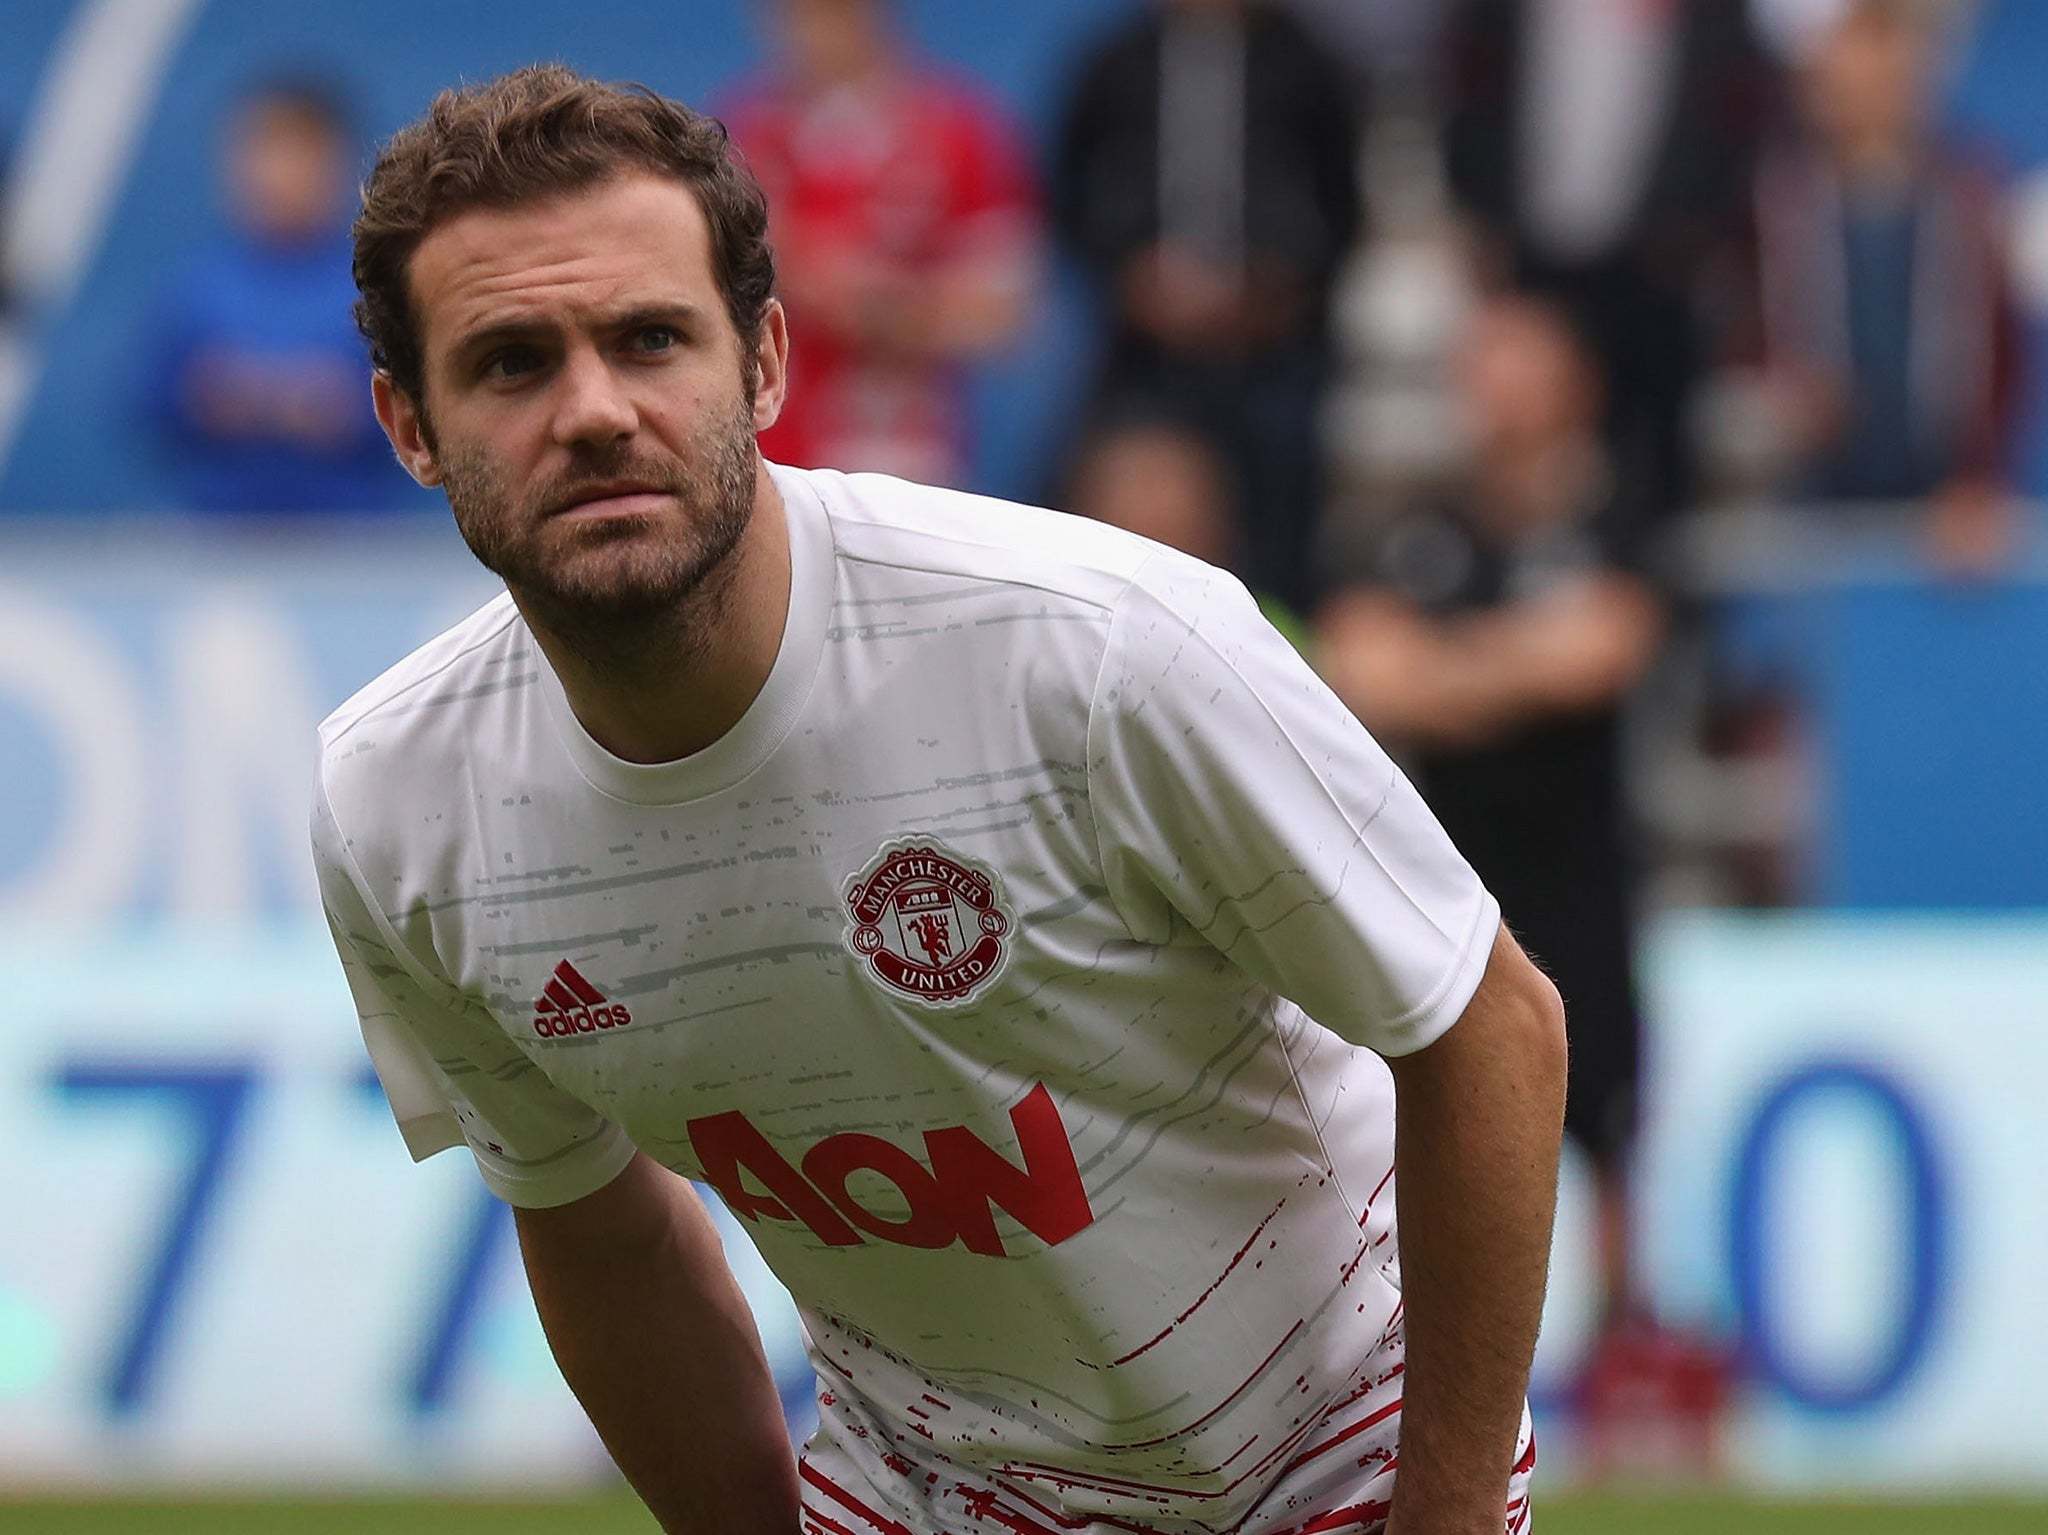 Manchester United: Jose Mourinho says 'there is space' for Juan Mata at Old Trafford despite Chelsea fall-out